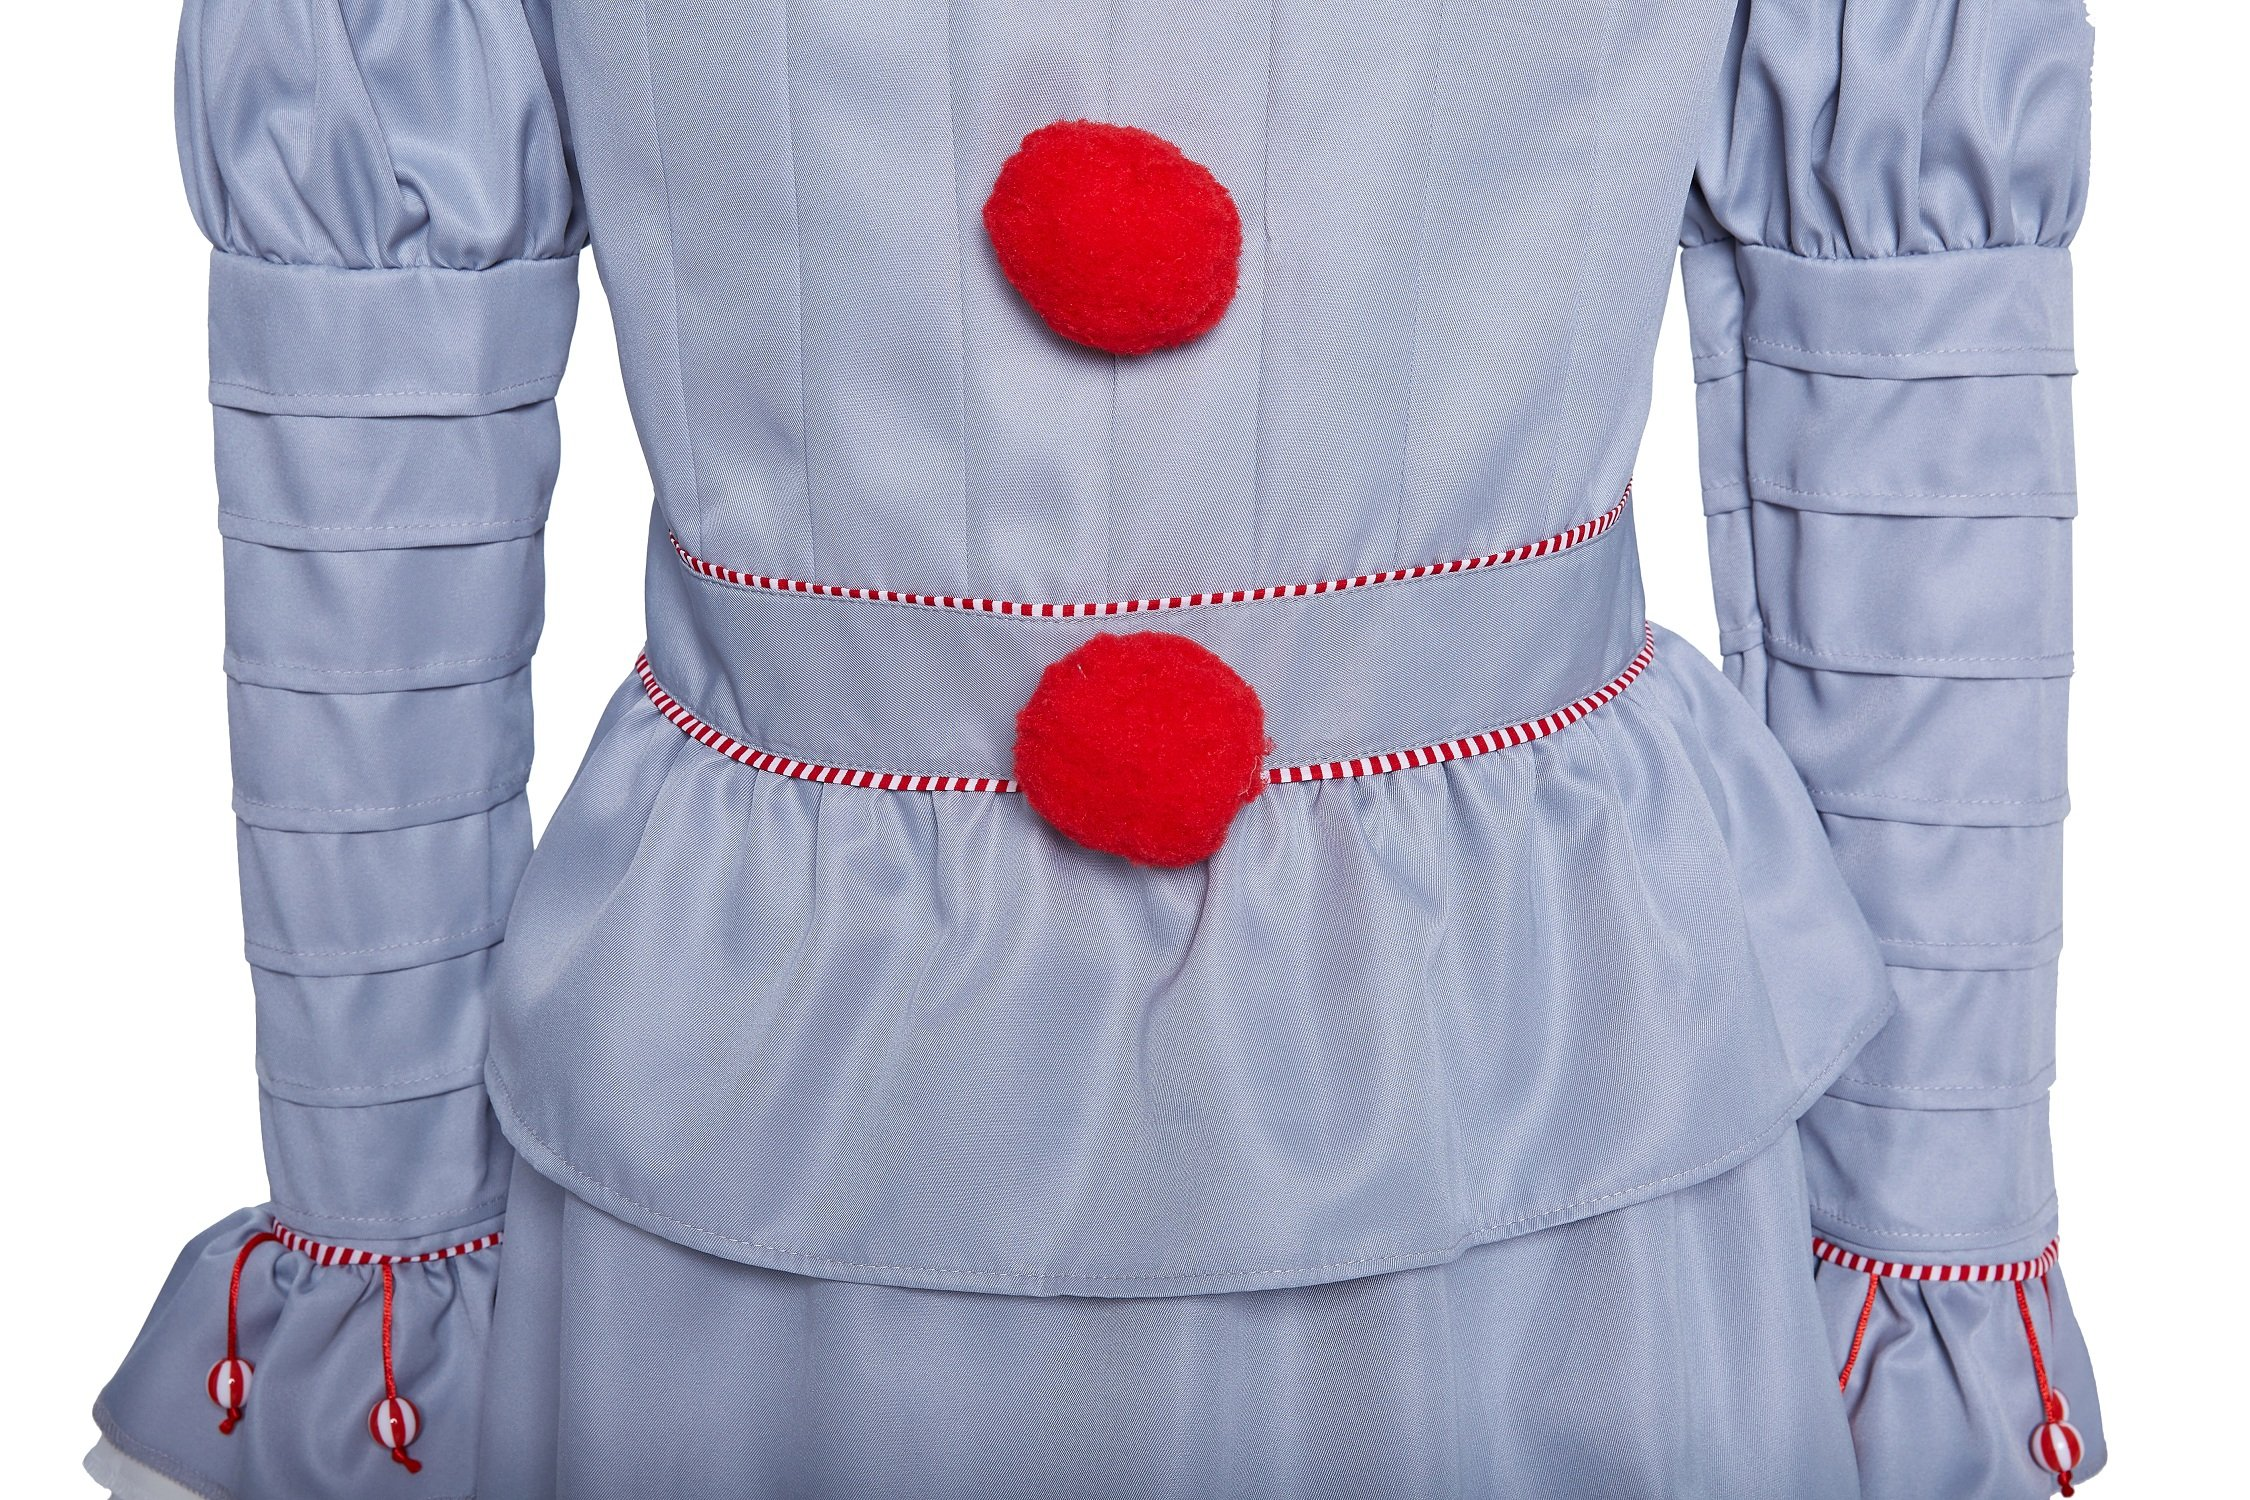 Women's Halloween Clown Cosplay Costumes Pennywise Costplay Outfit, M by Quintion Anneao (Image #3)